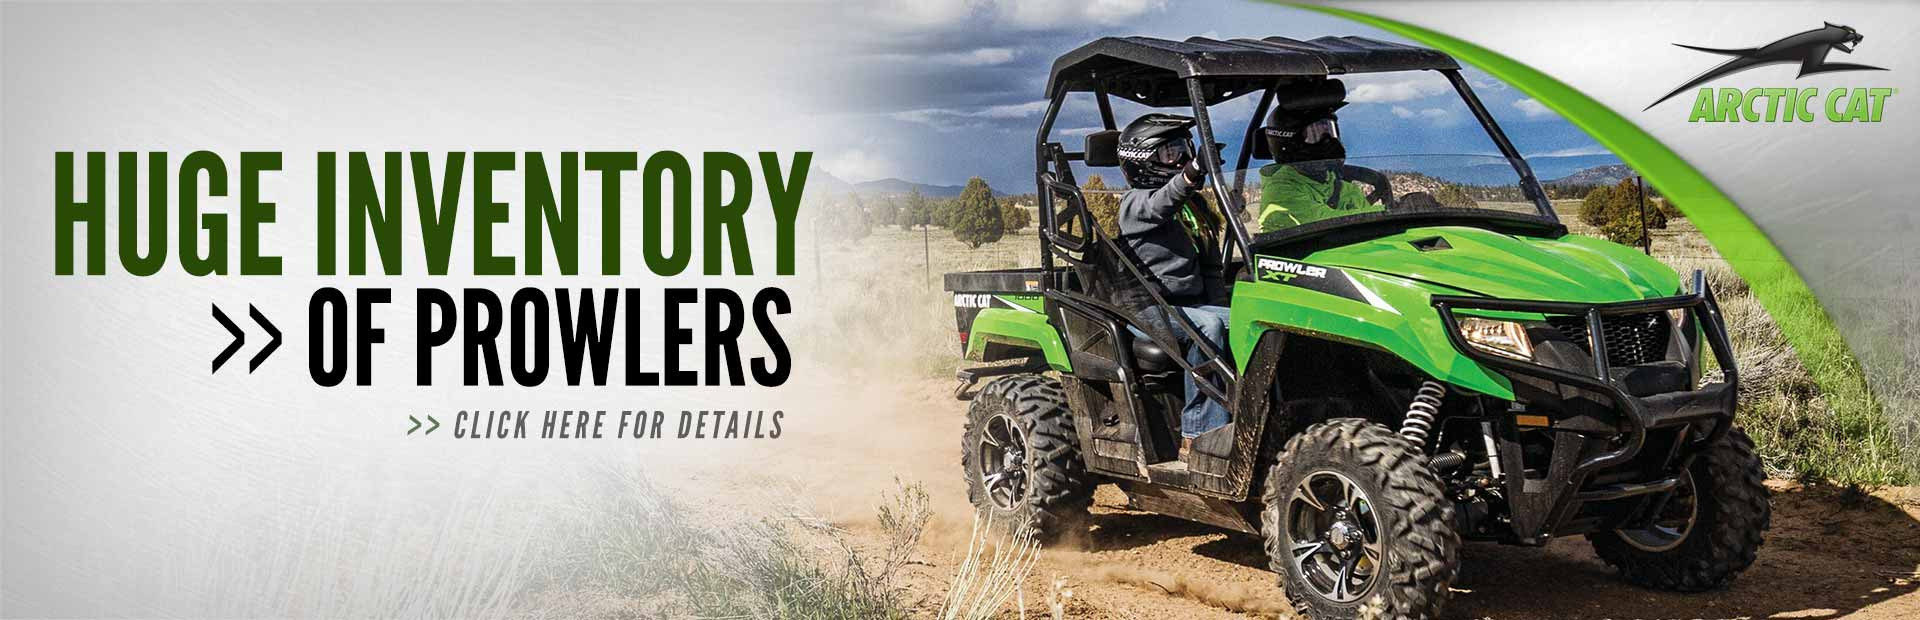 Click here to check out our huge inventory of Arctic Cat Prowlers!